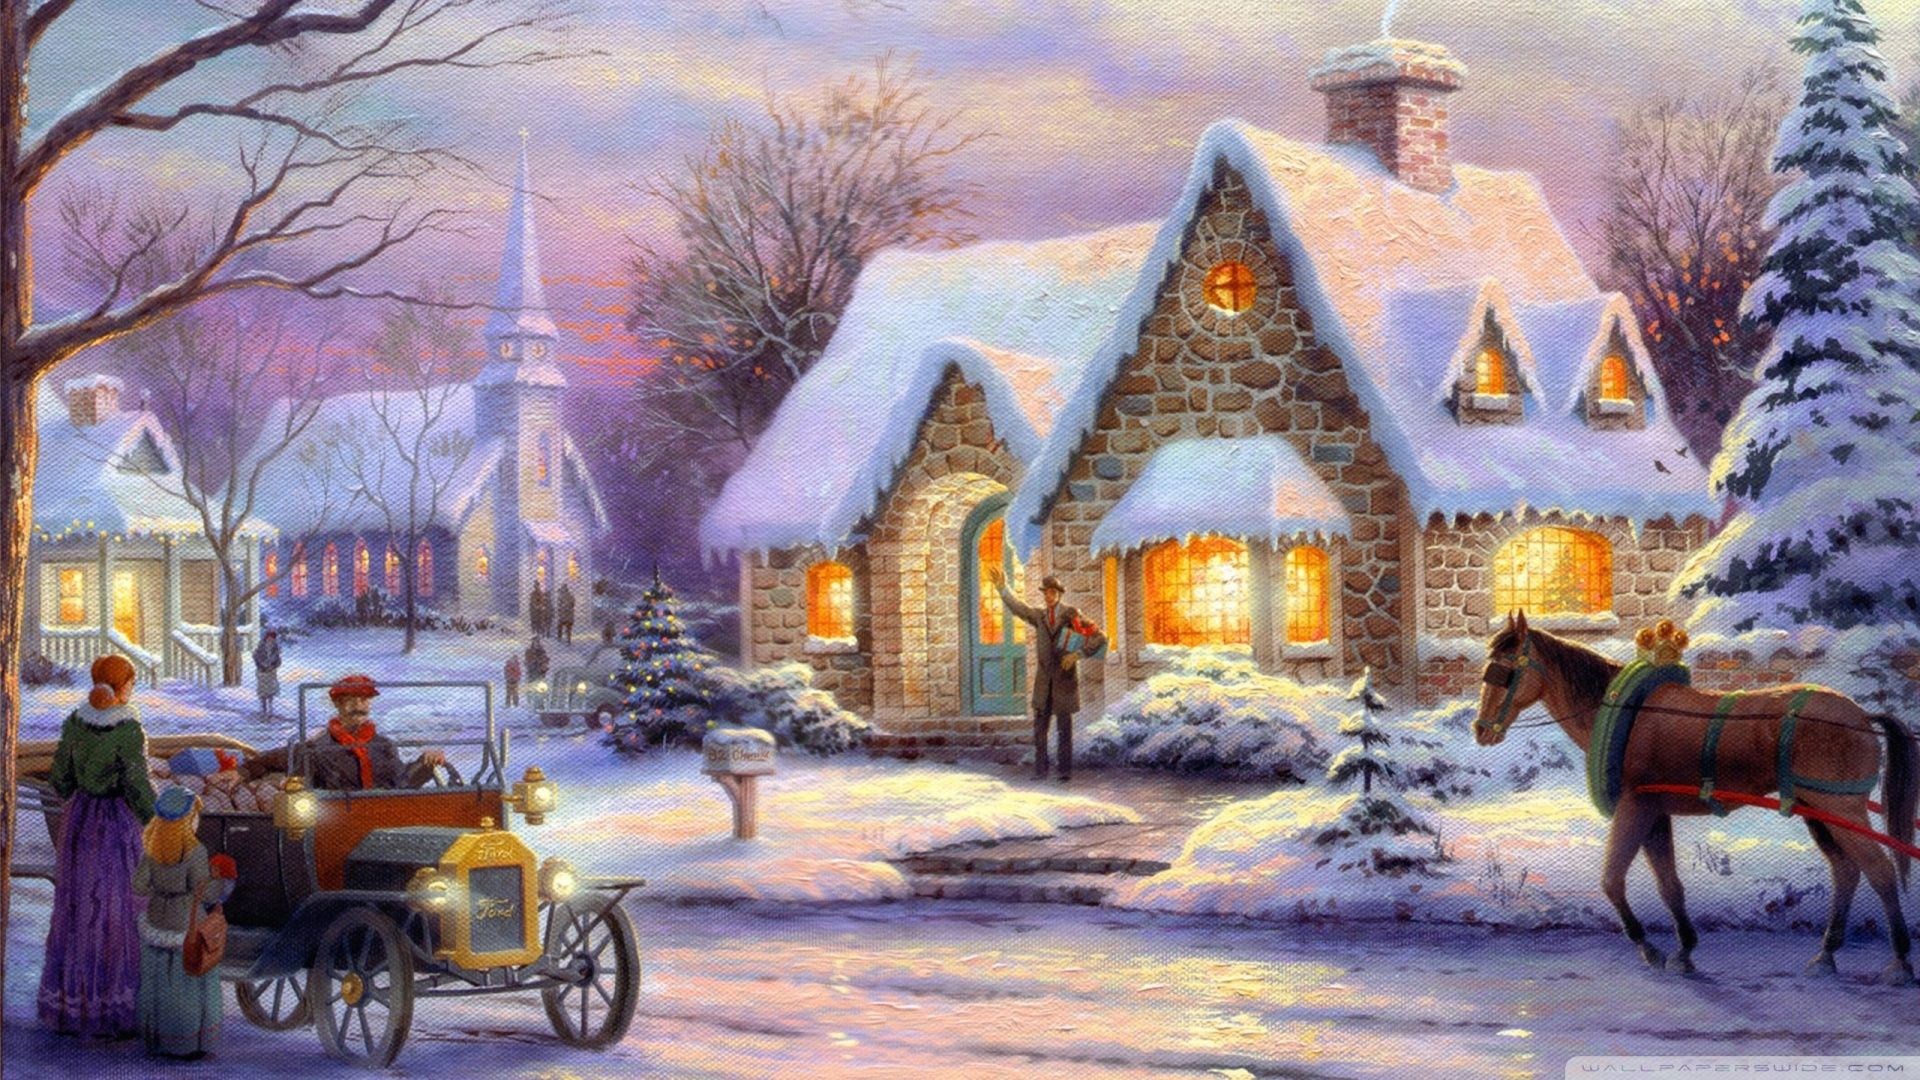 Thomas Kinkade Wallpaper 1920x1080 Memories, Of, Christmas, By, Thomas .